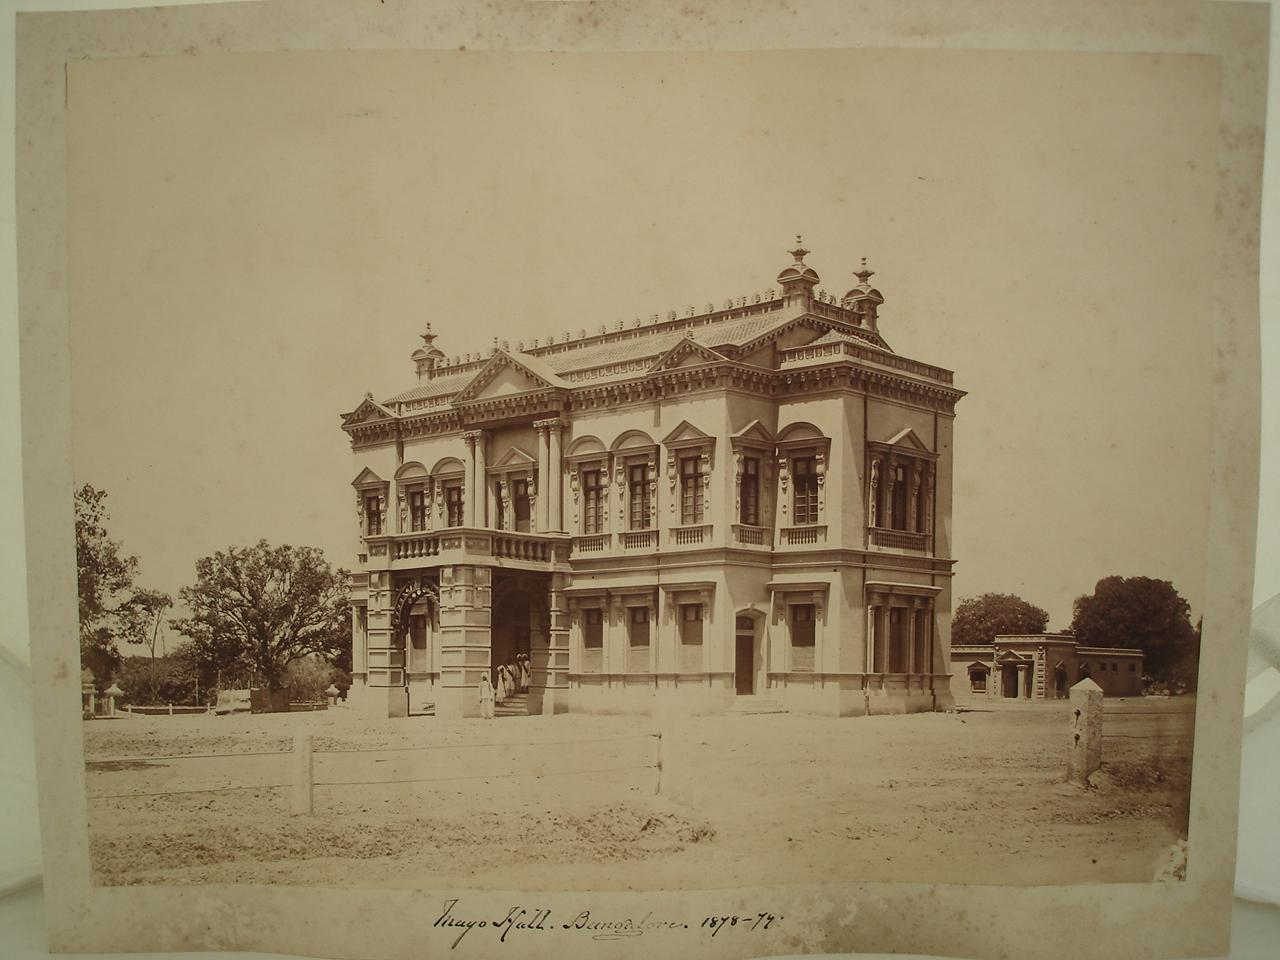 Mayo Hall in Bangalore (Bengaluru) - 1878-79